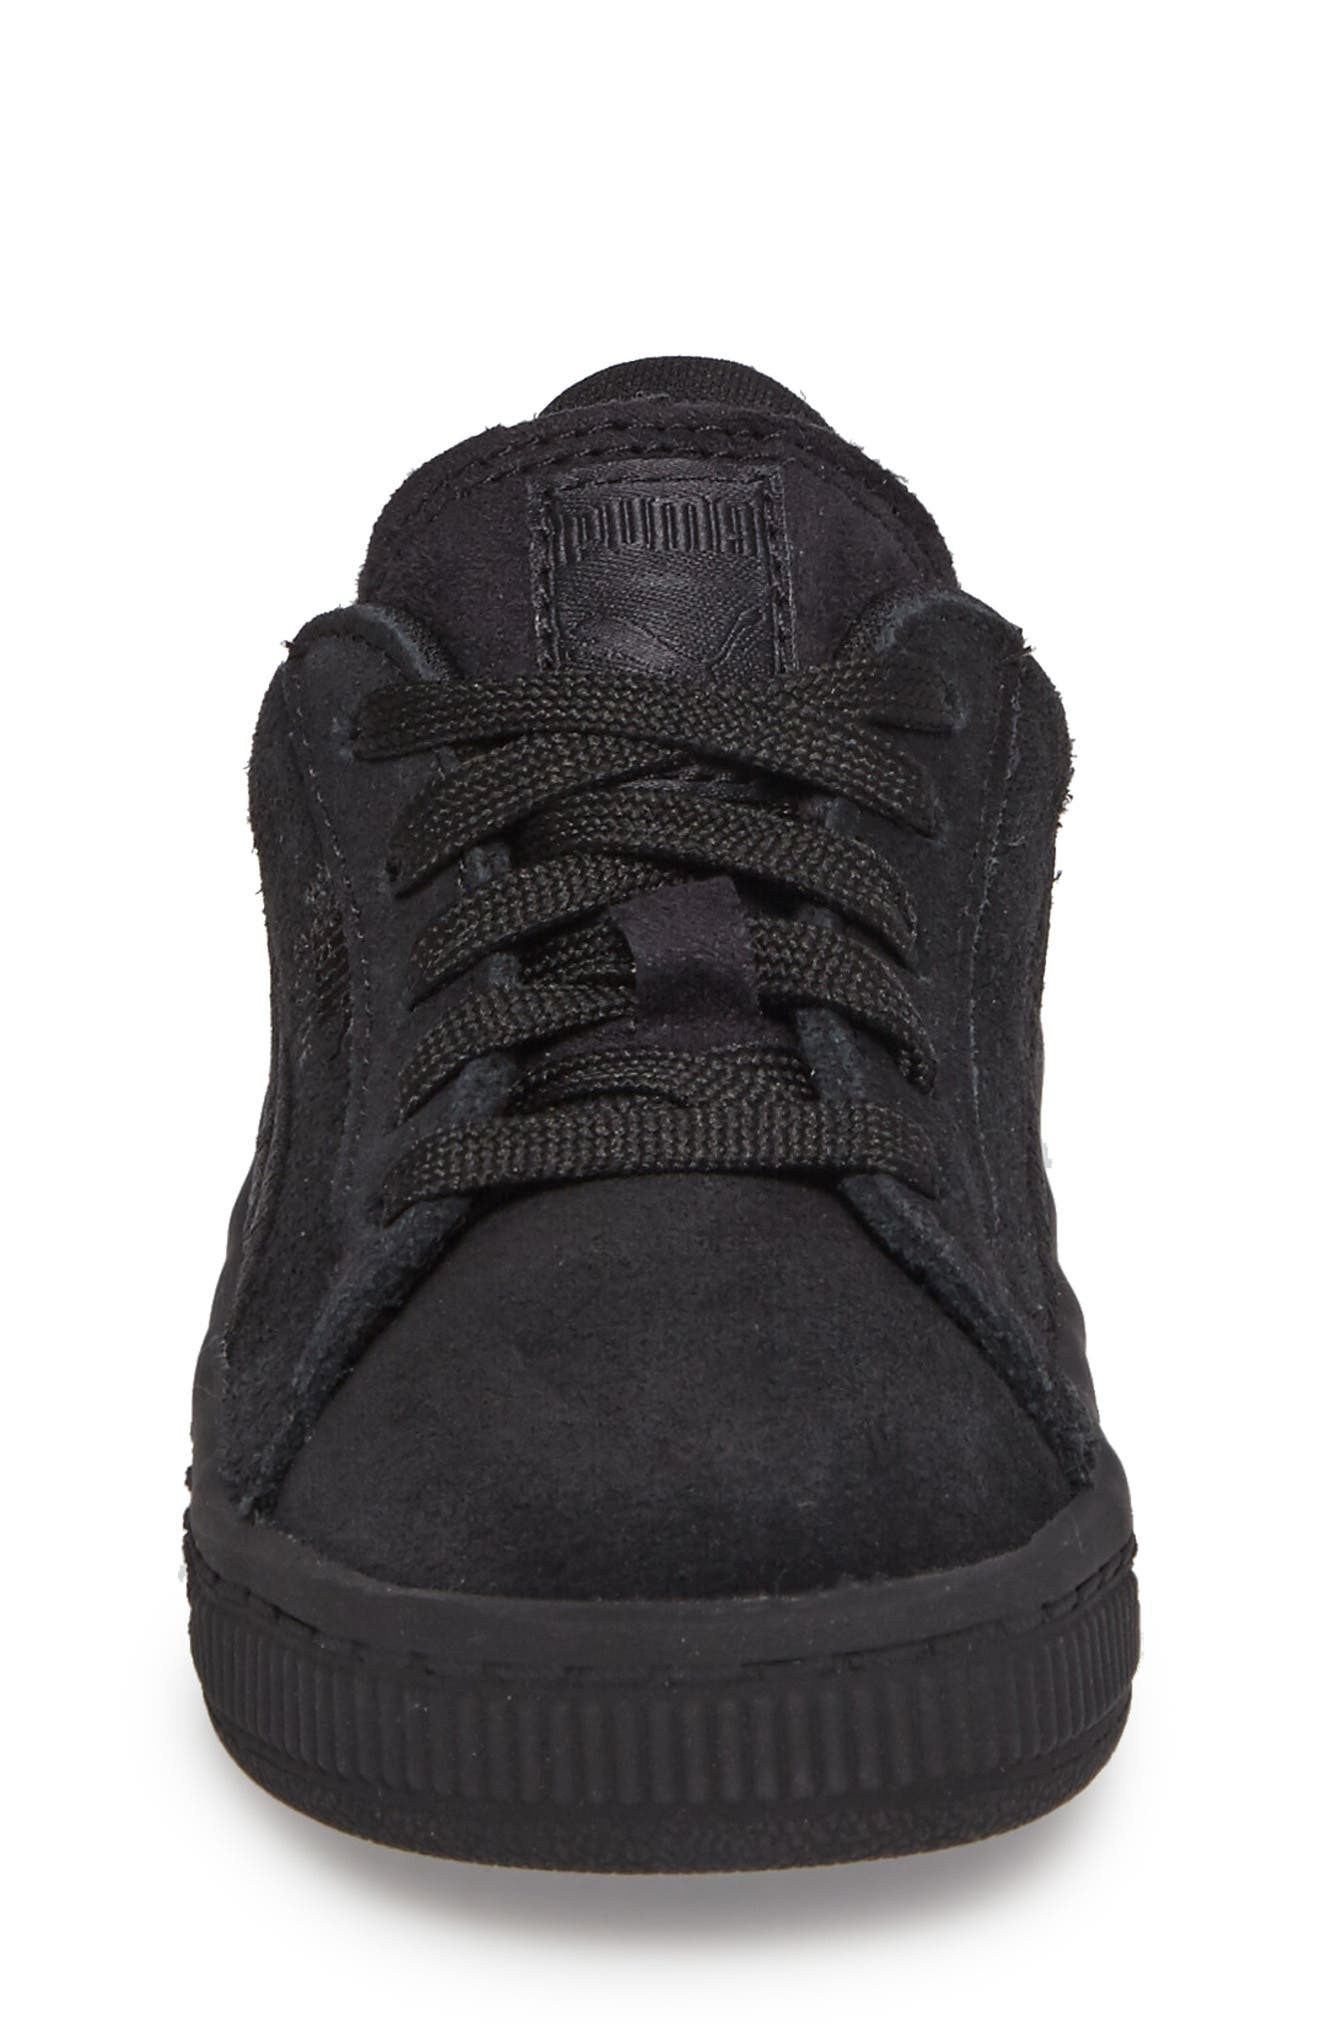 Suede Classic Sneaker,                             Alternate thumbnail 4, color,                             001